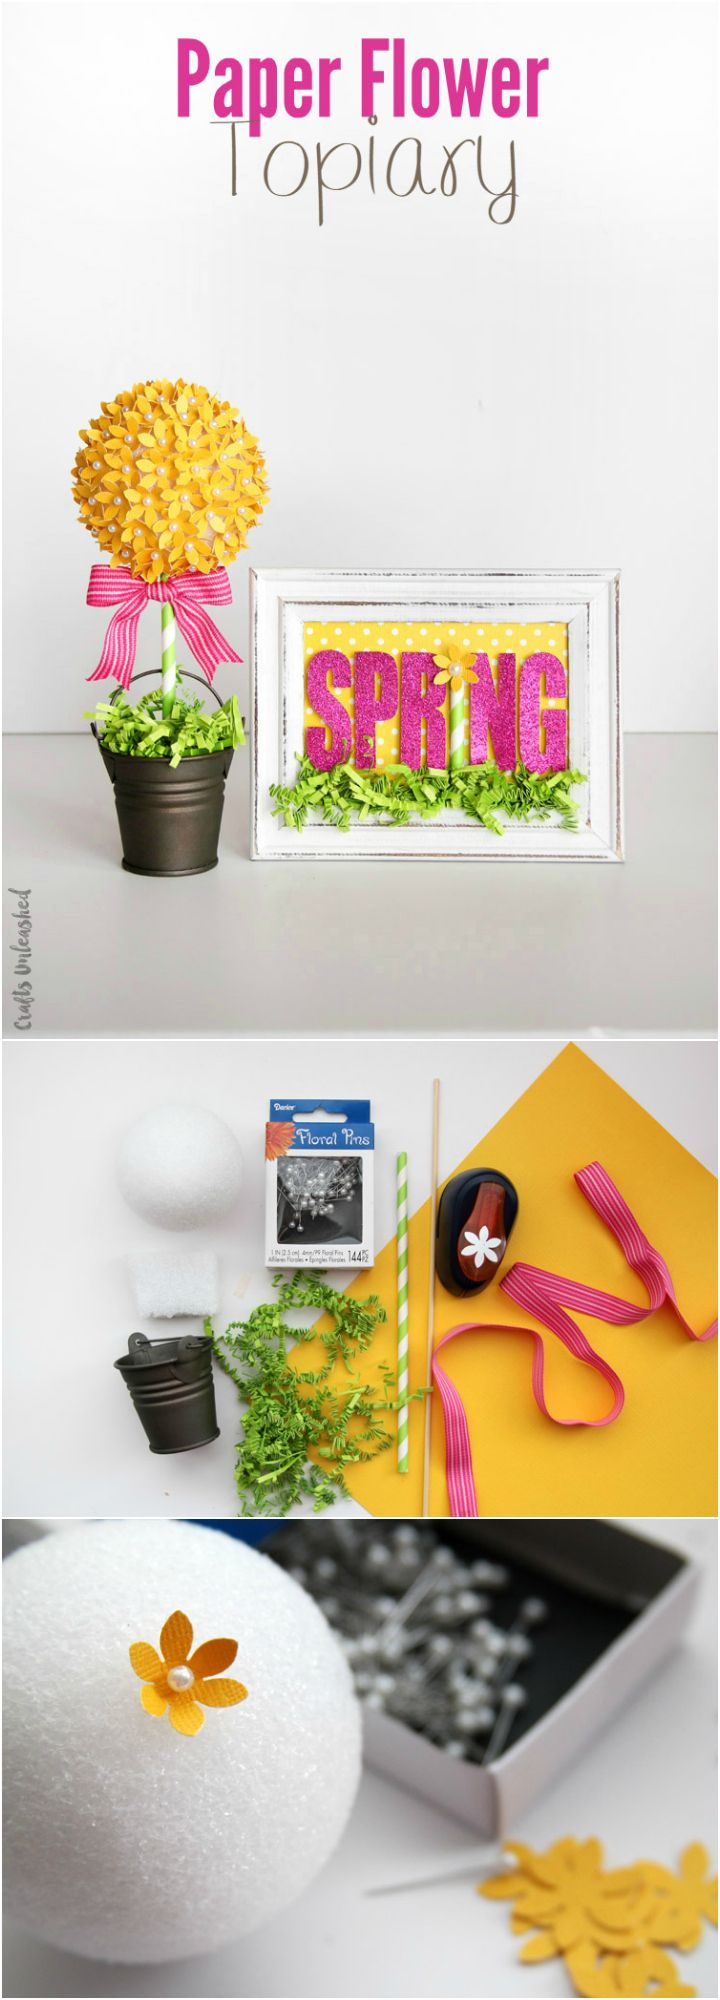 Easy spring crafts for seniors - Paper Flower Topiary Craft Step By Step Consumer Crafts Diy Springspring Craftssenior